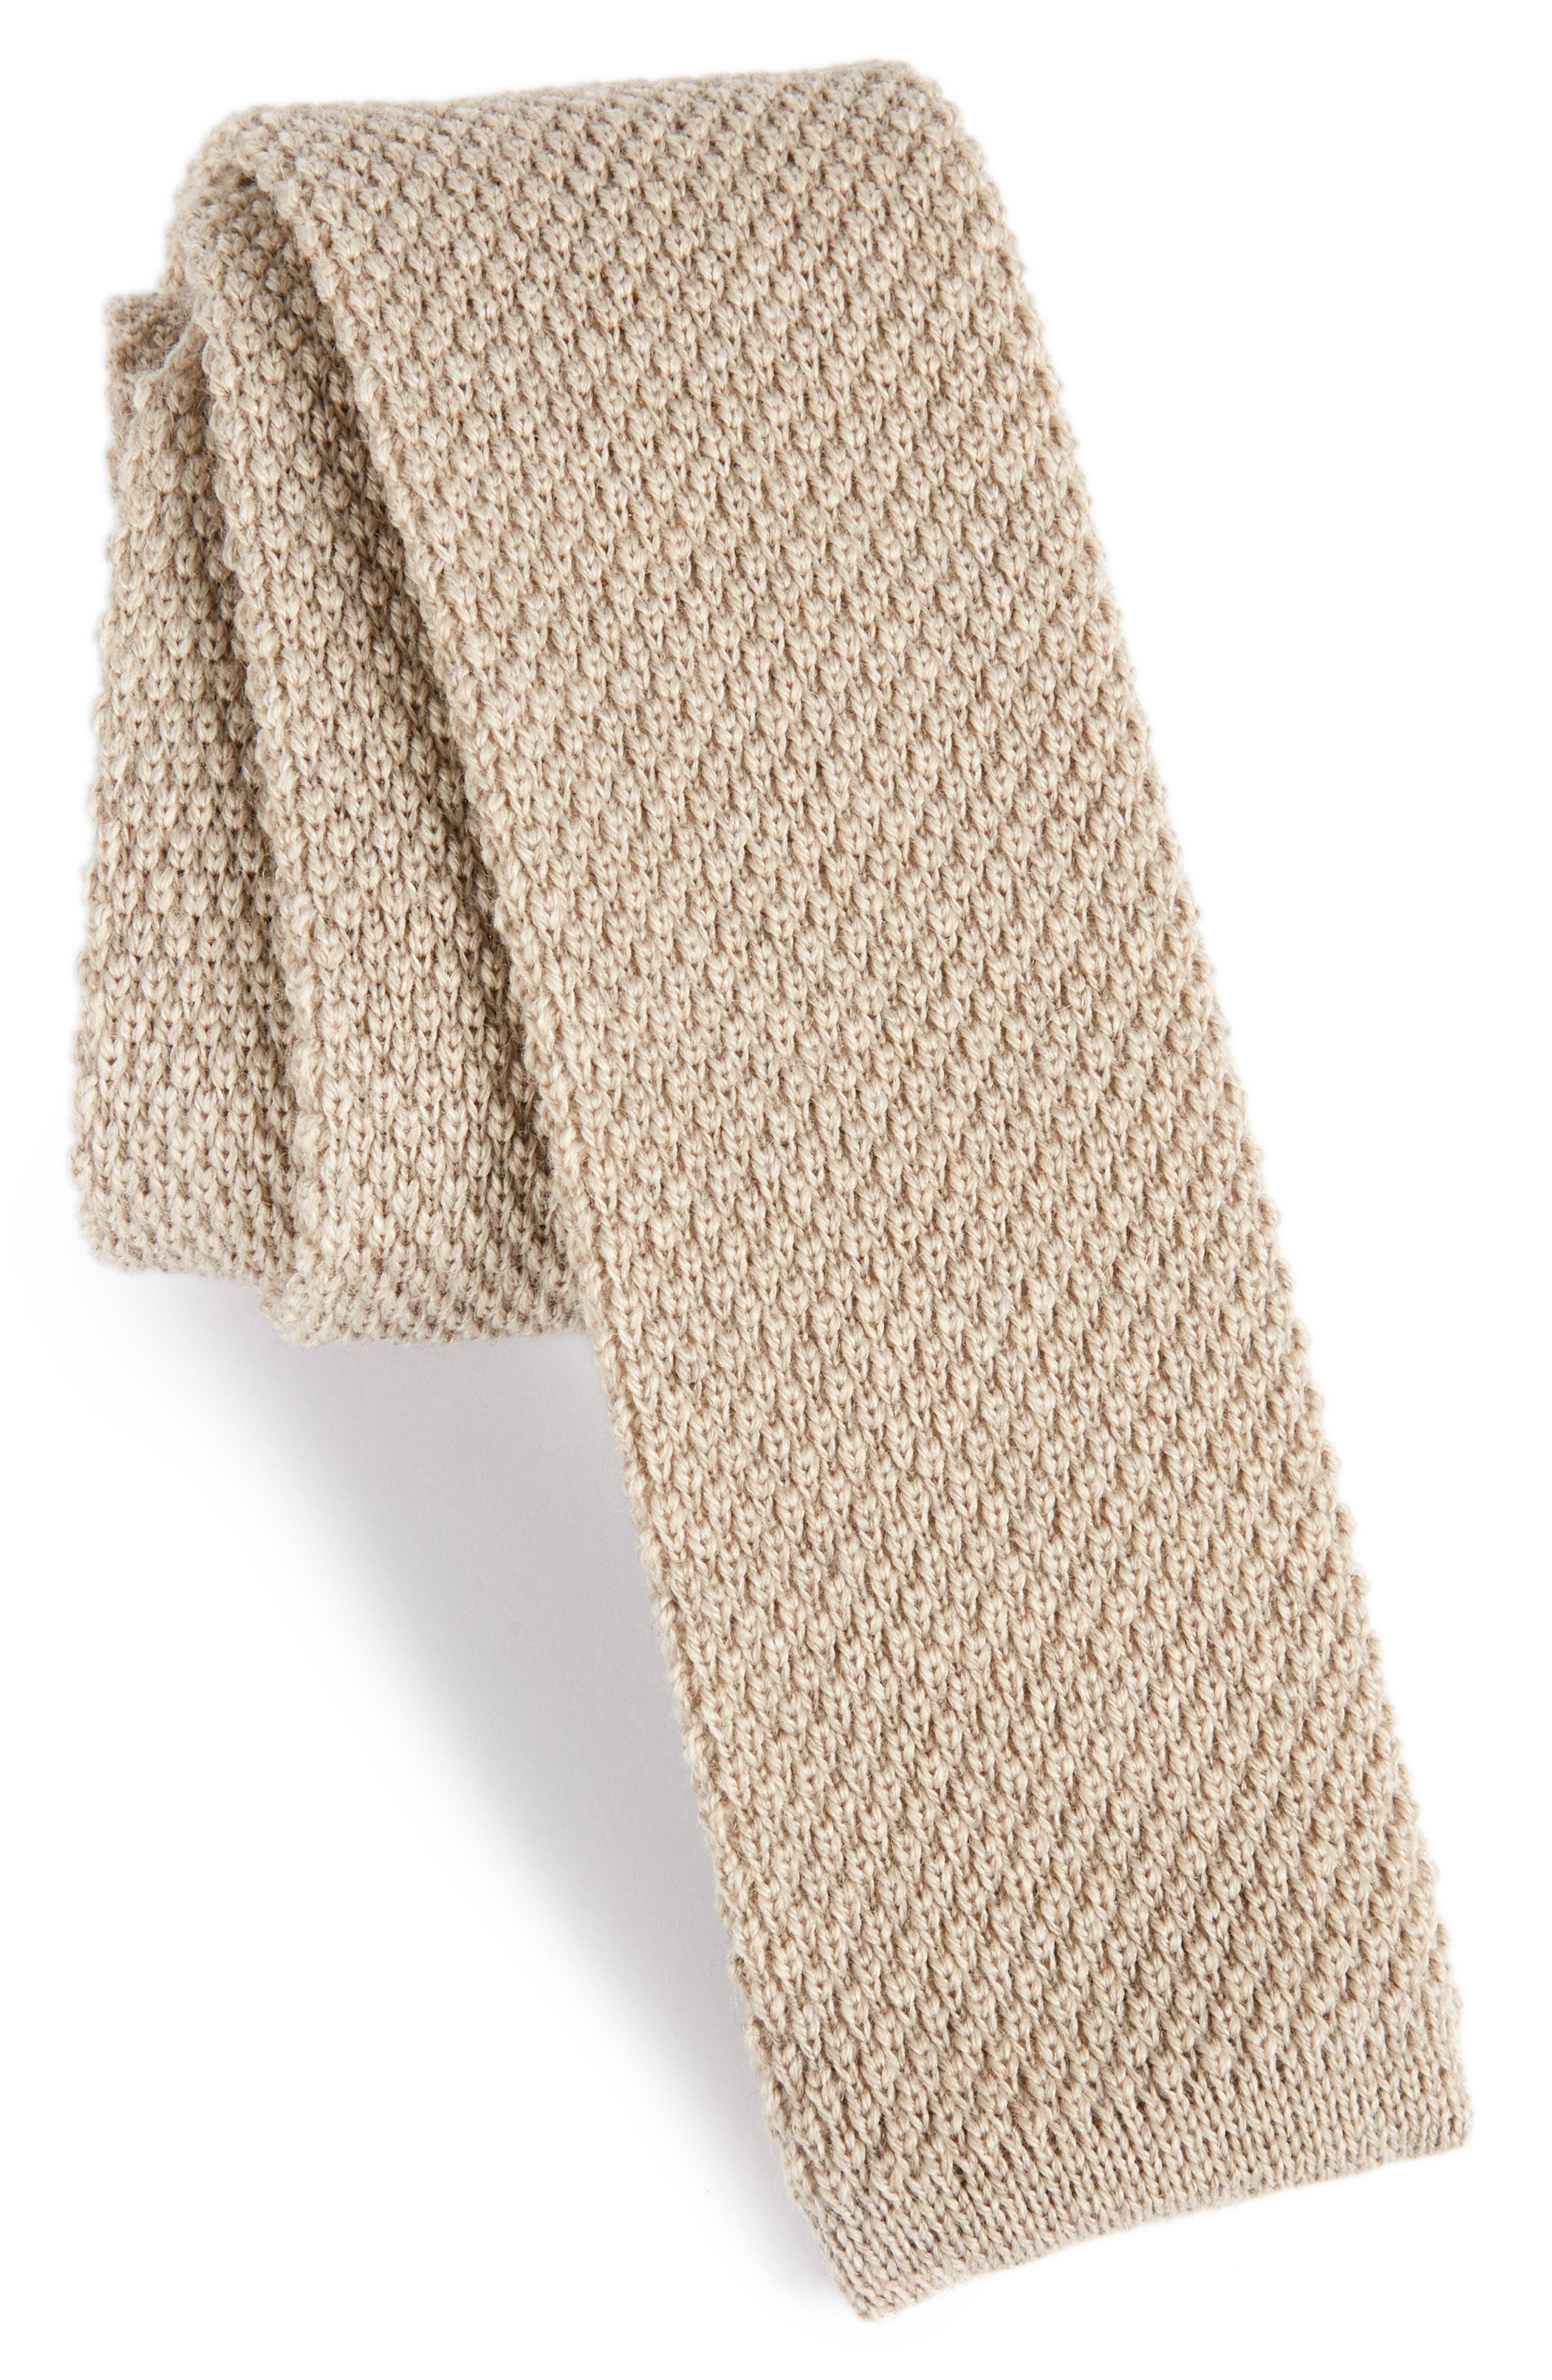 Solid Knit Wool Skinny Tie,                             Main thumbnail 2, color,